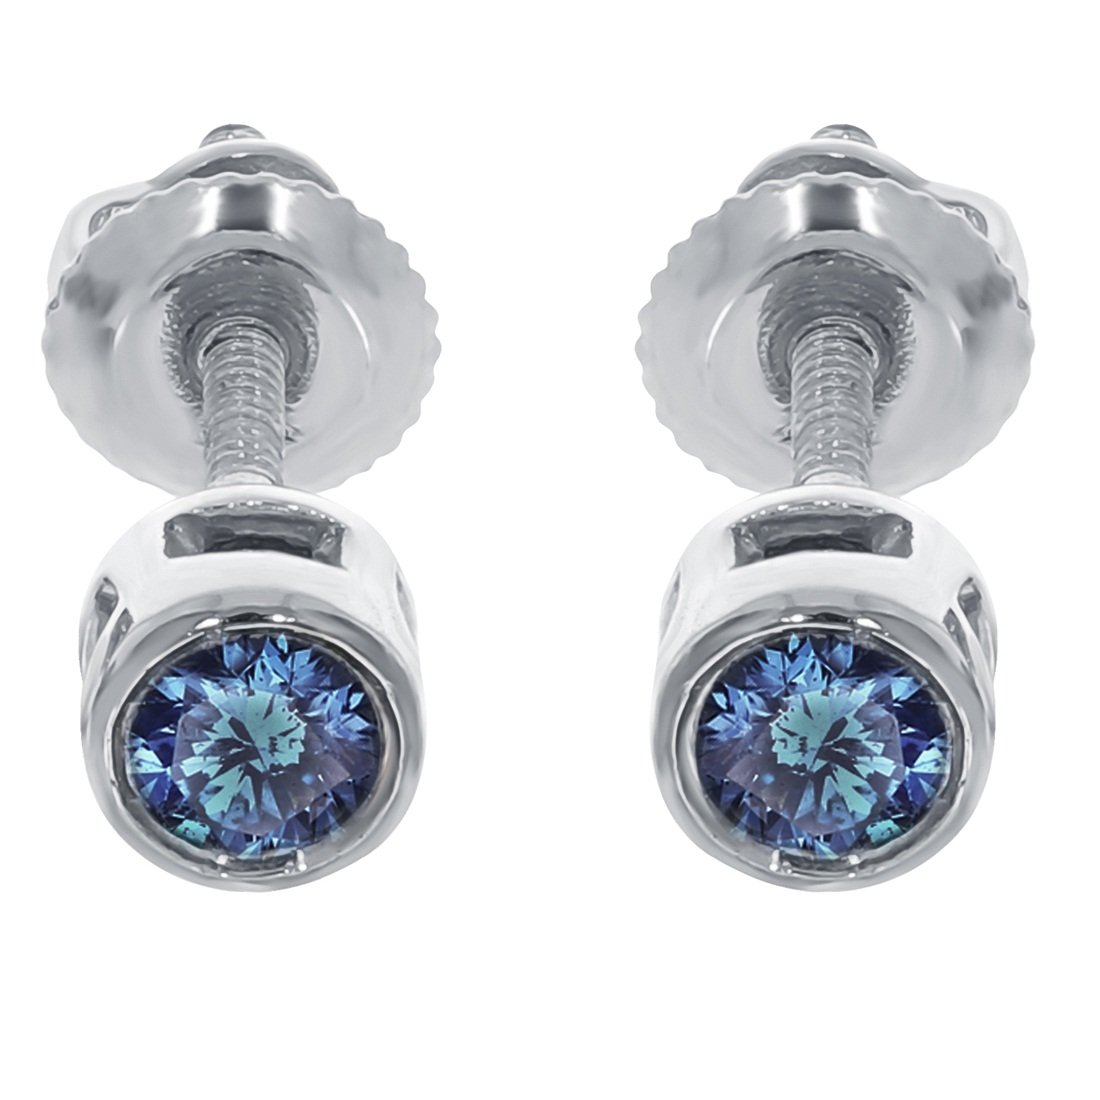 Prism Jewel 0.18Ct /& 0.25 Ct Blue Diamond Bezel Set Solitaire Screw Back Stud Earrings Crafted In 14k Gold